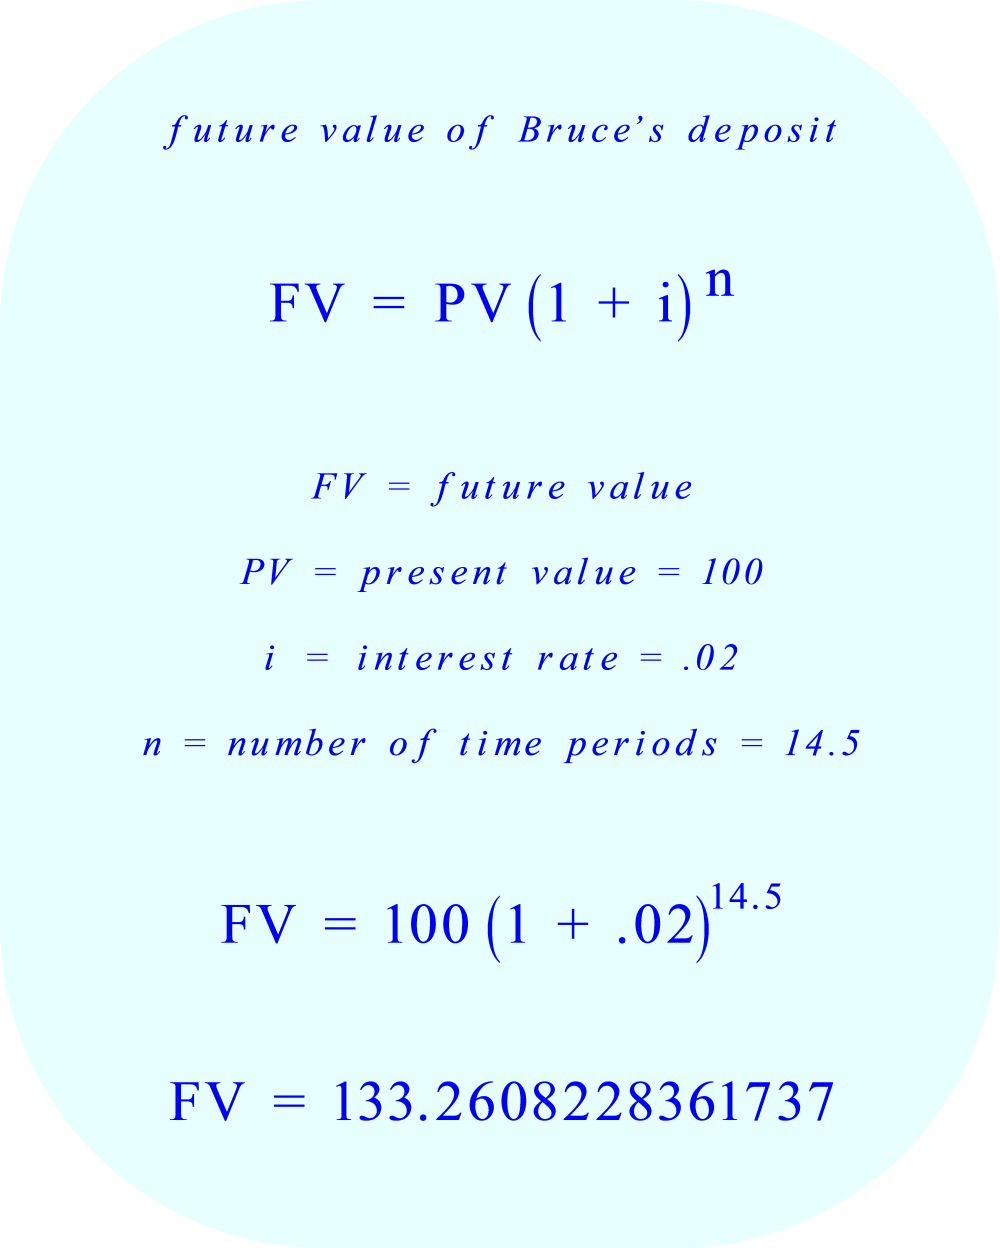 Compound interest calculation:  the future value of Bruce's deposit